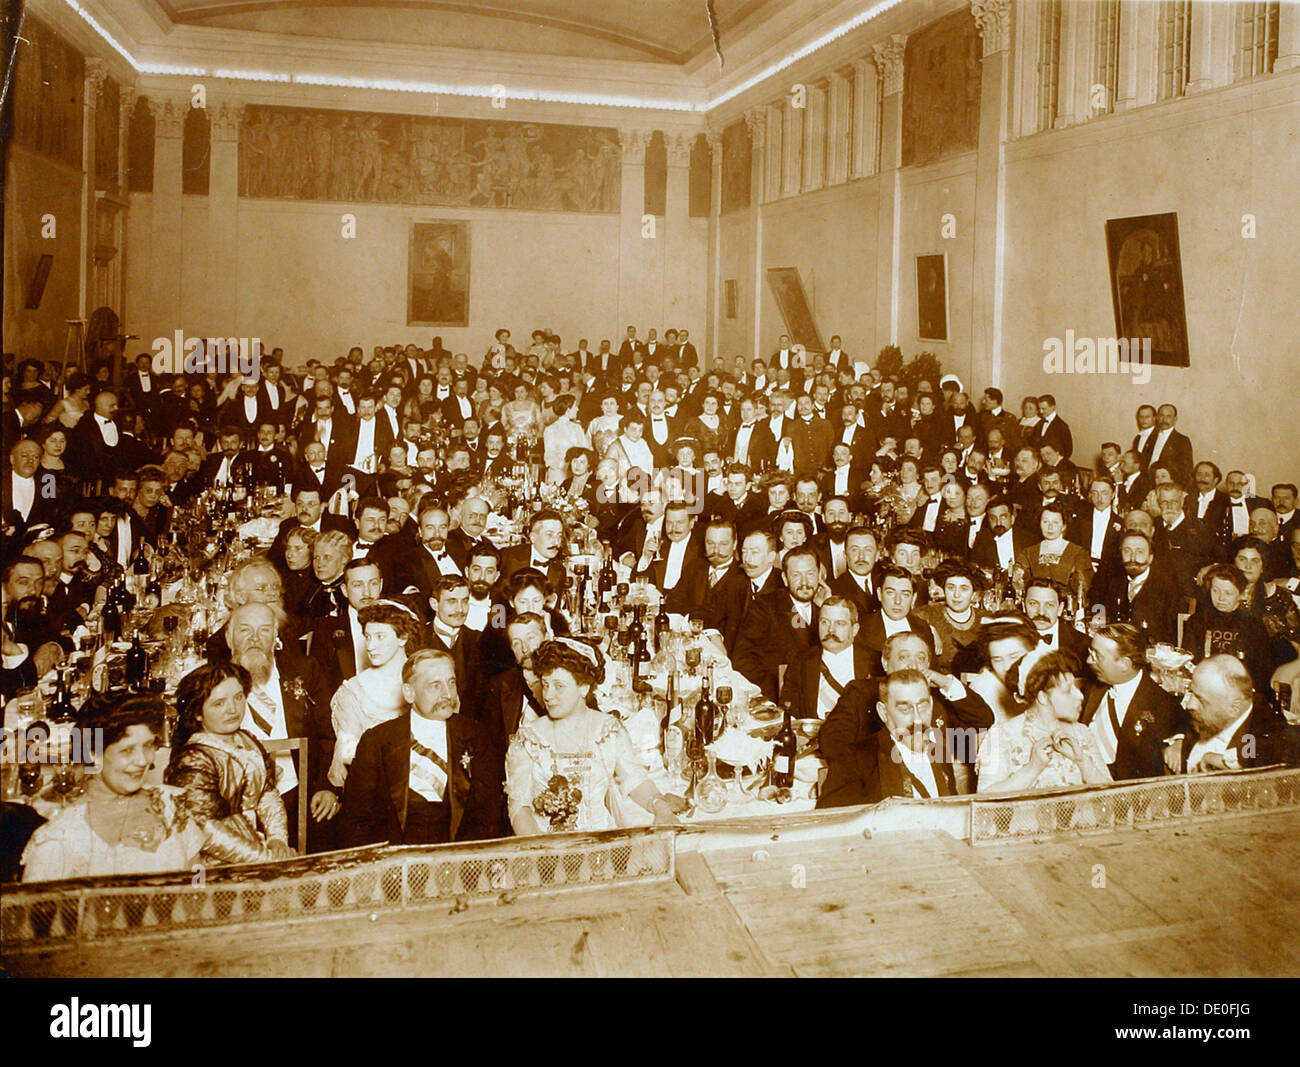 Restaurant, House of the Association of Literature and Arts, Russia, 1910s. - Stock Image